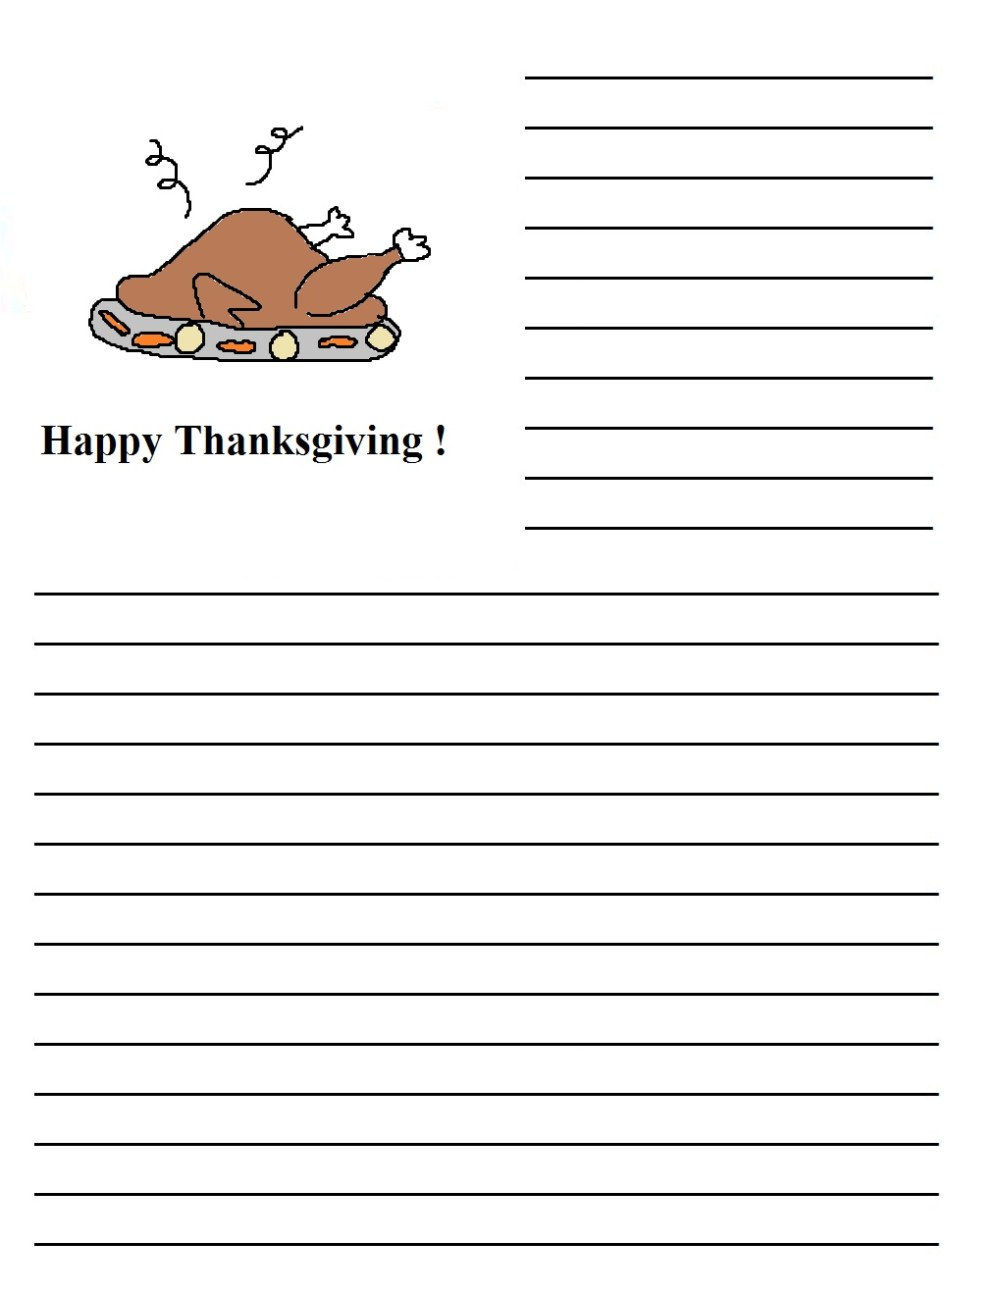 medium resolution of Thanksgiving Writing Prompts: Yes